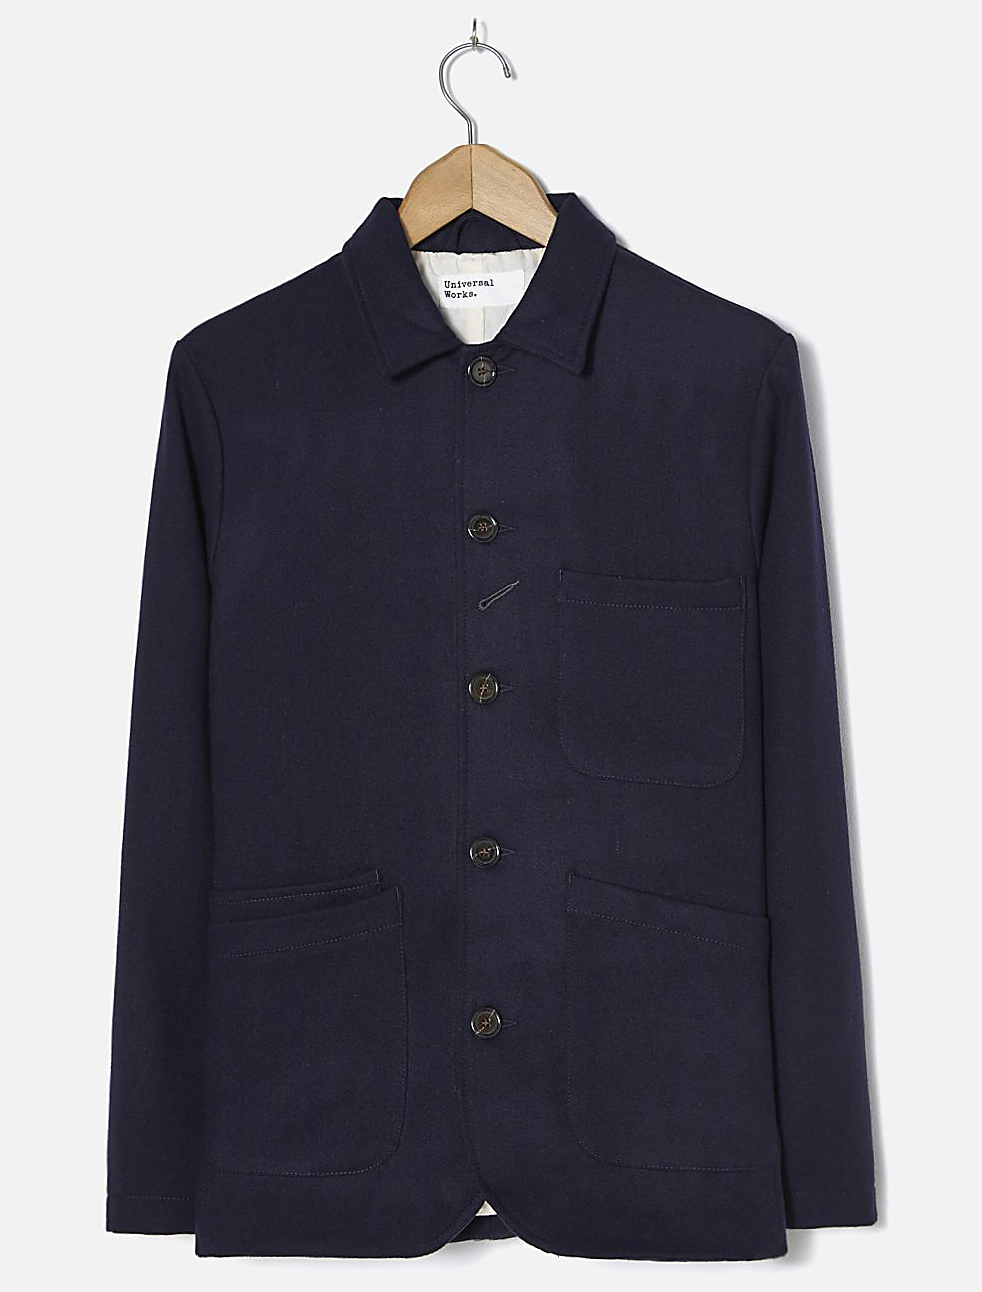 Universal Works Bakers Jacket Twill Wool Navy